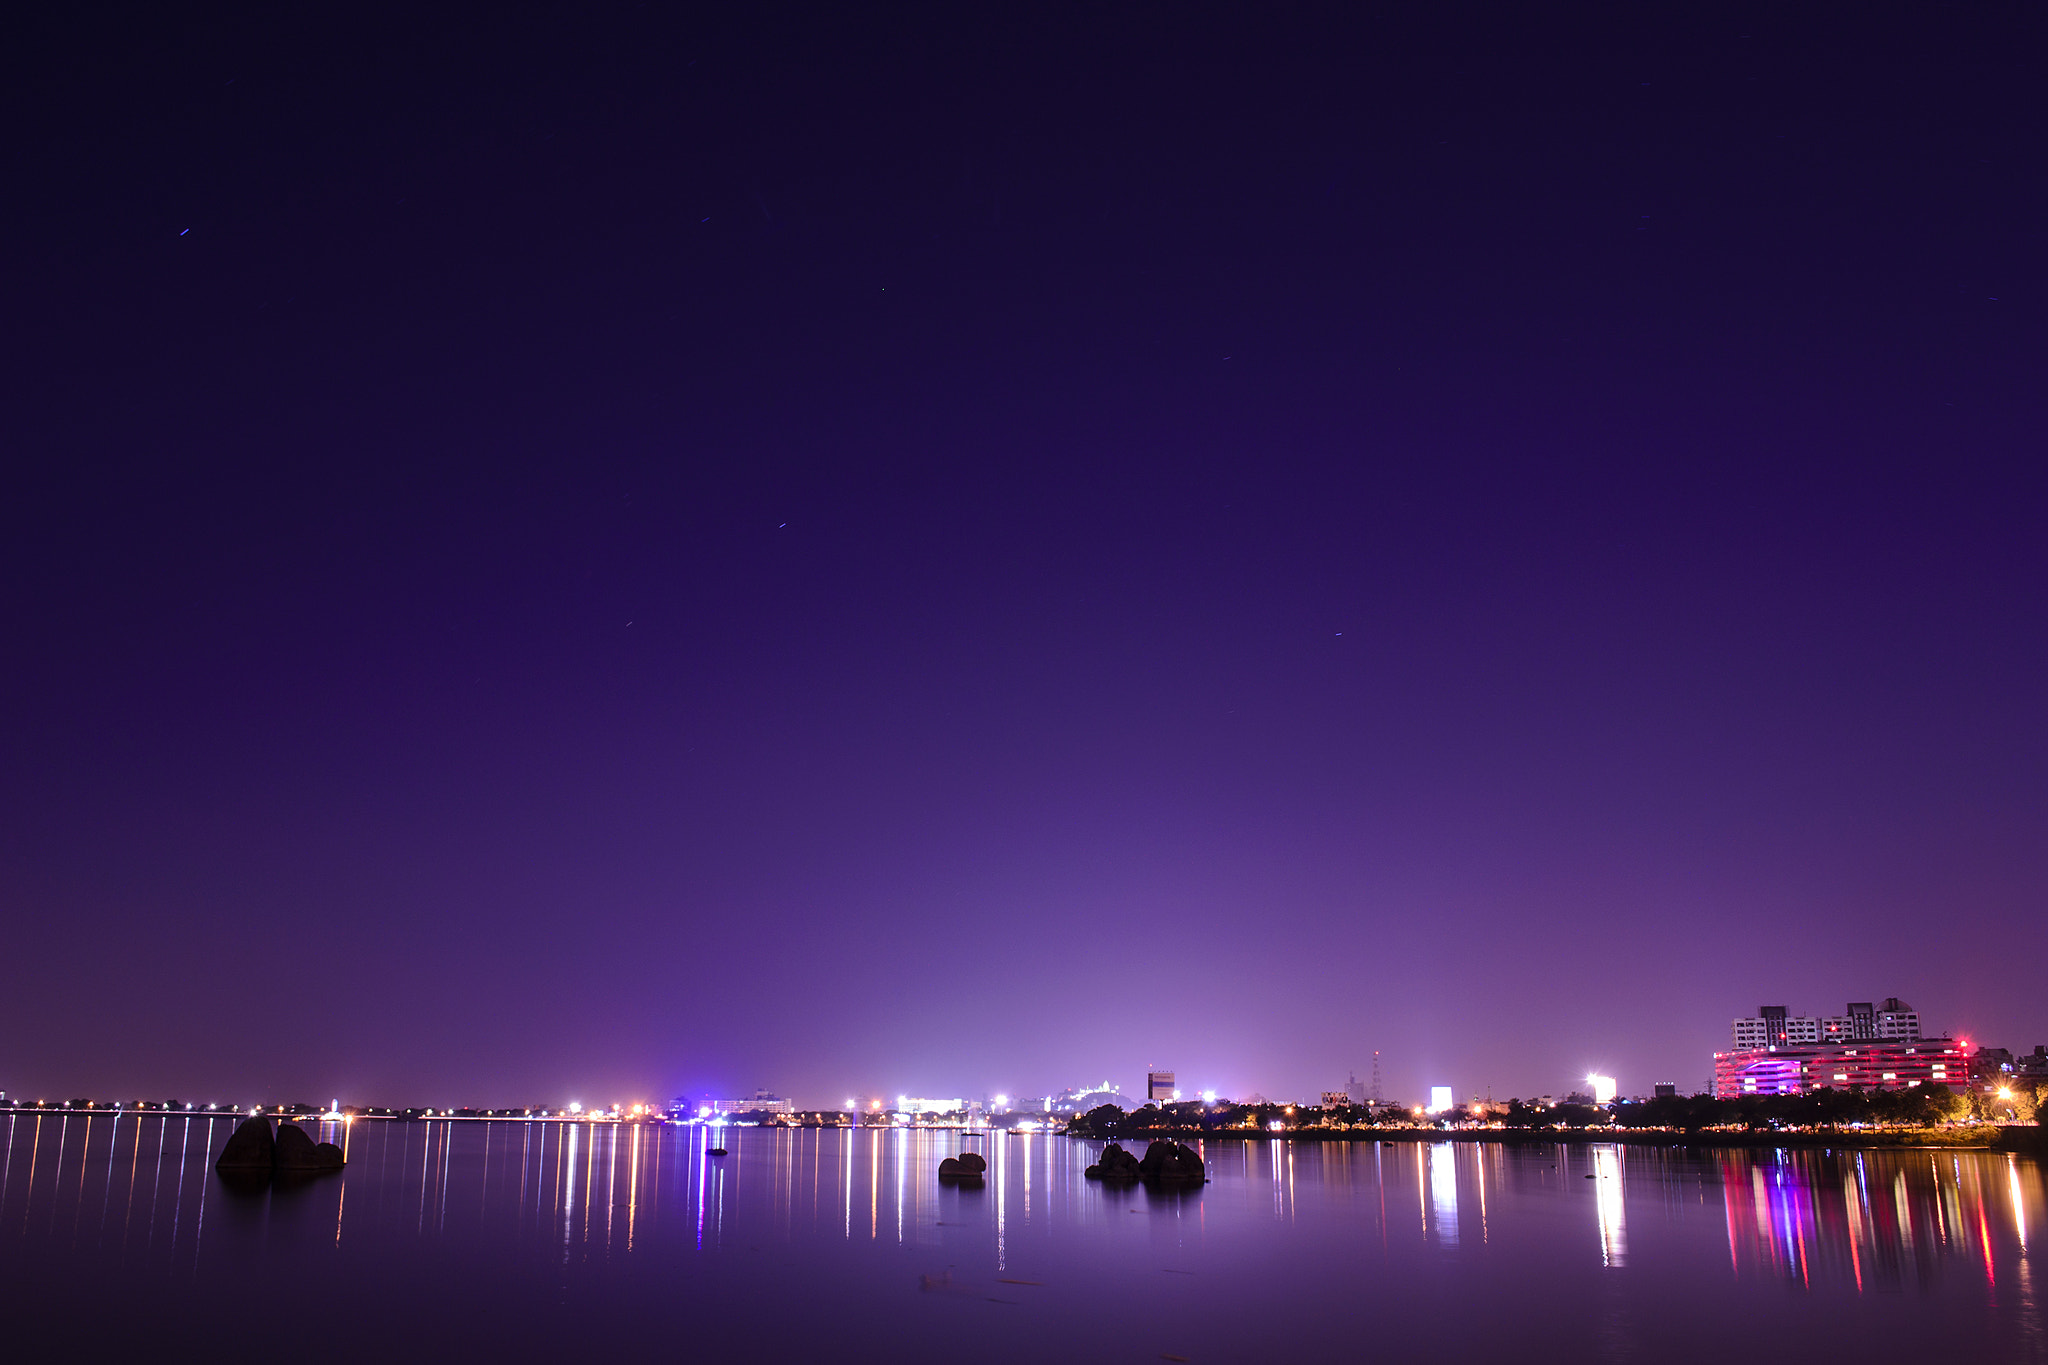 Photograph City Lights by Anil Kumar on 500px